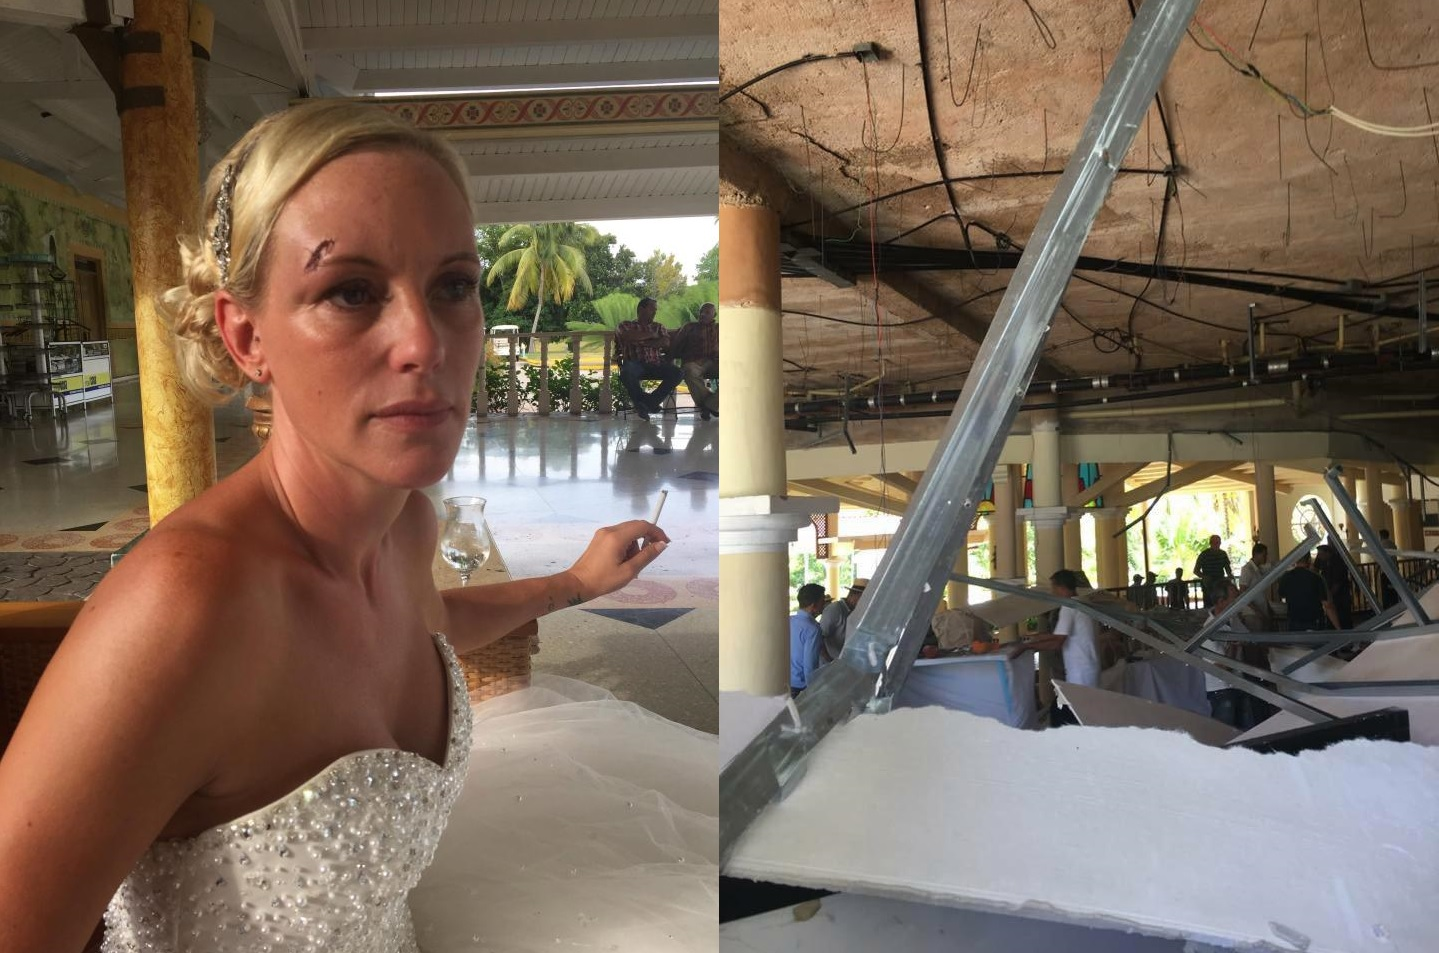 The Sarah And John Wenham Were Both Injured Day Before Wedding Of Their Dreams Leaving Bride Permanently Scarred Groom With Broken Ribs